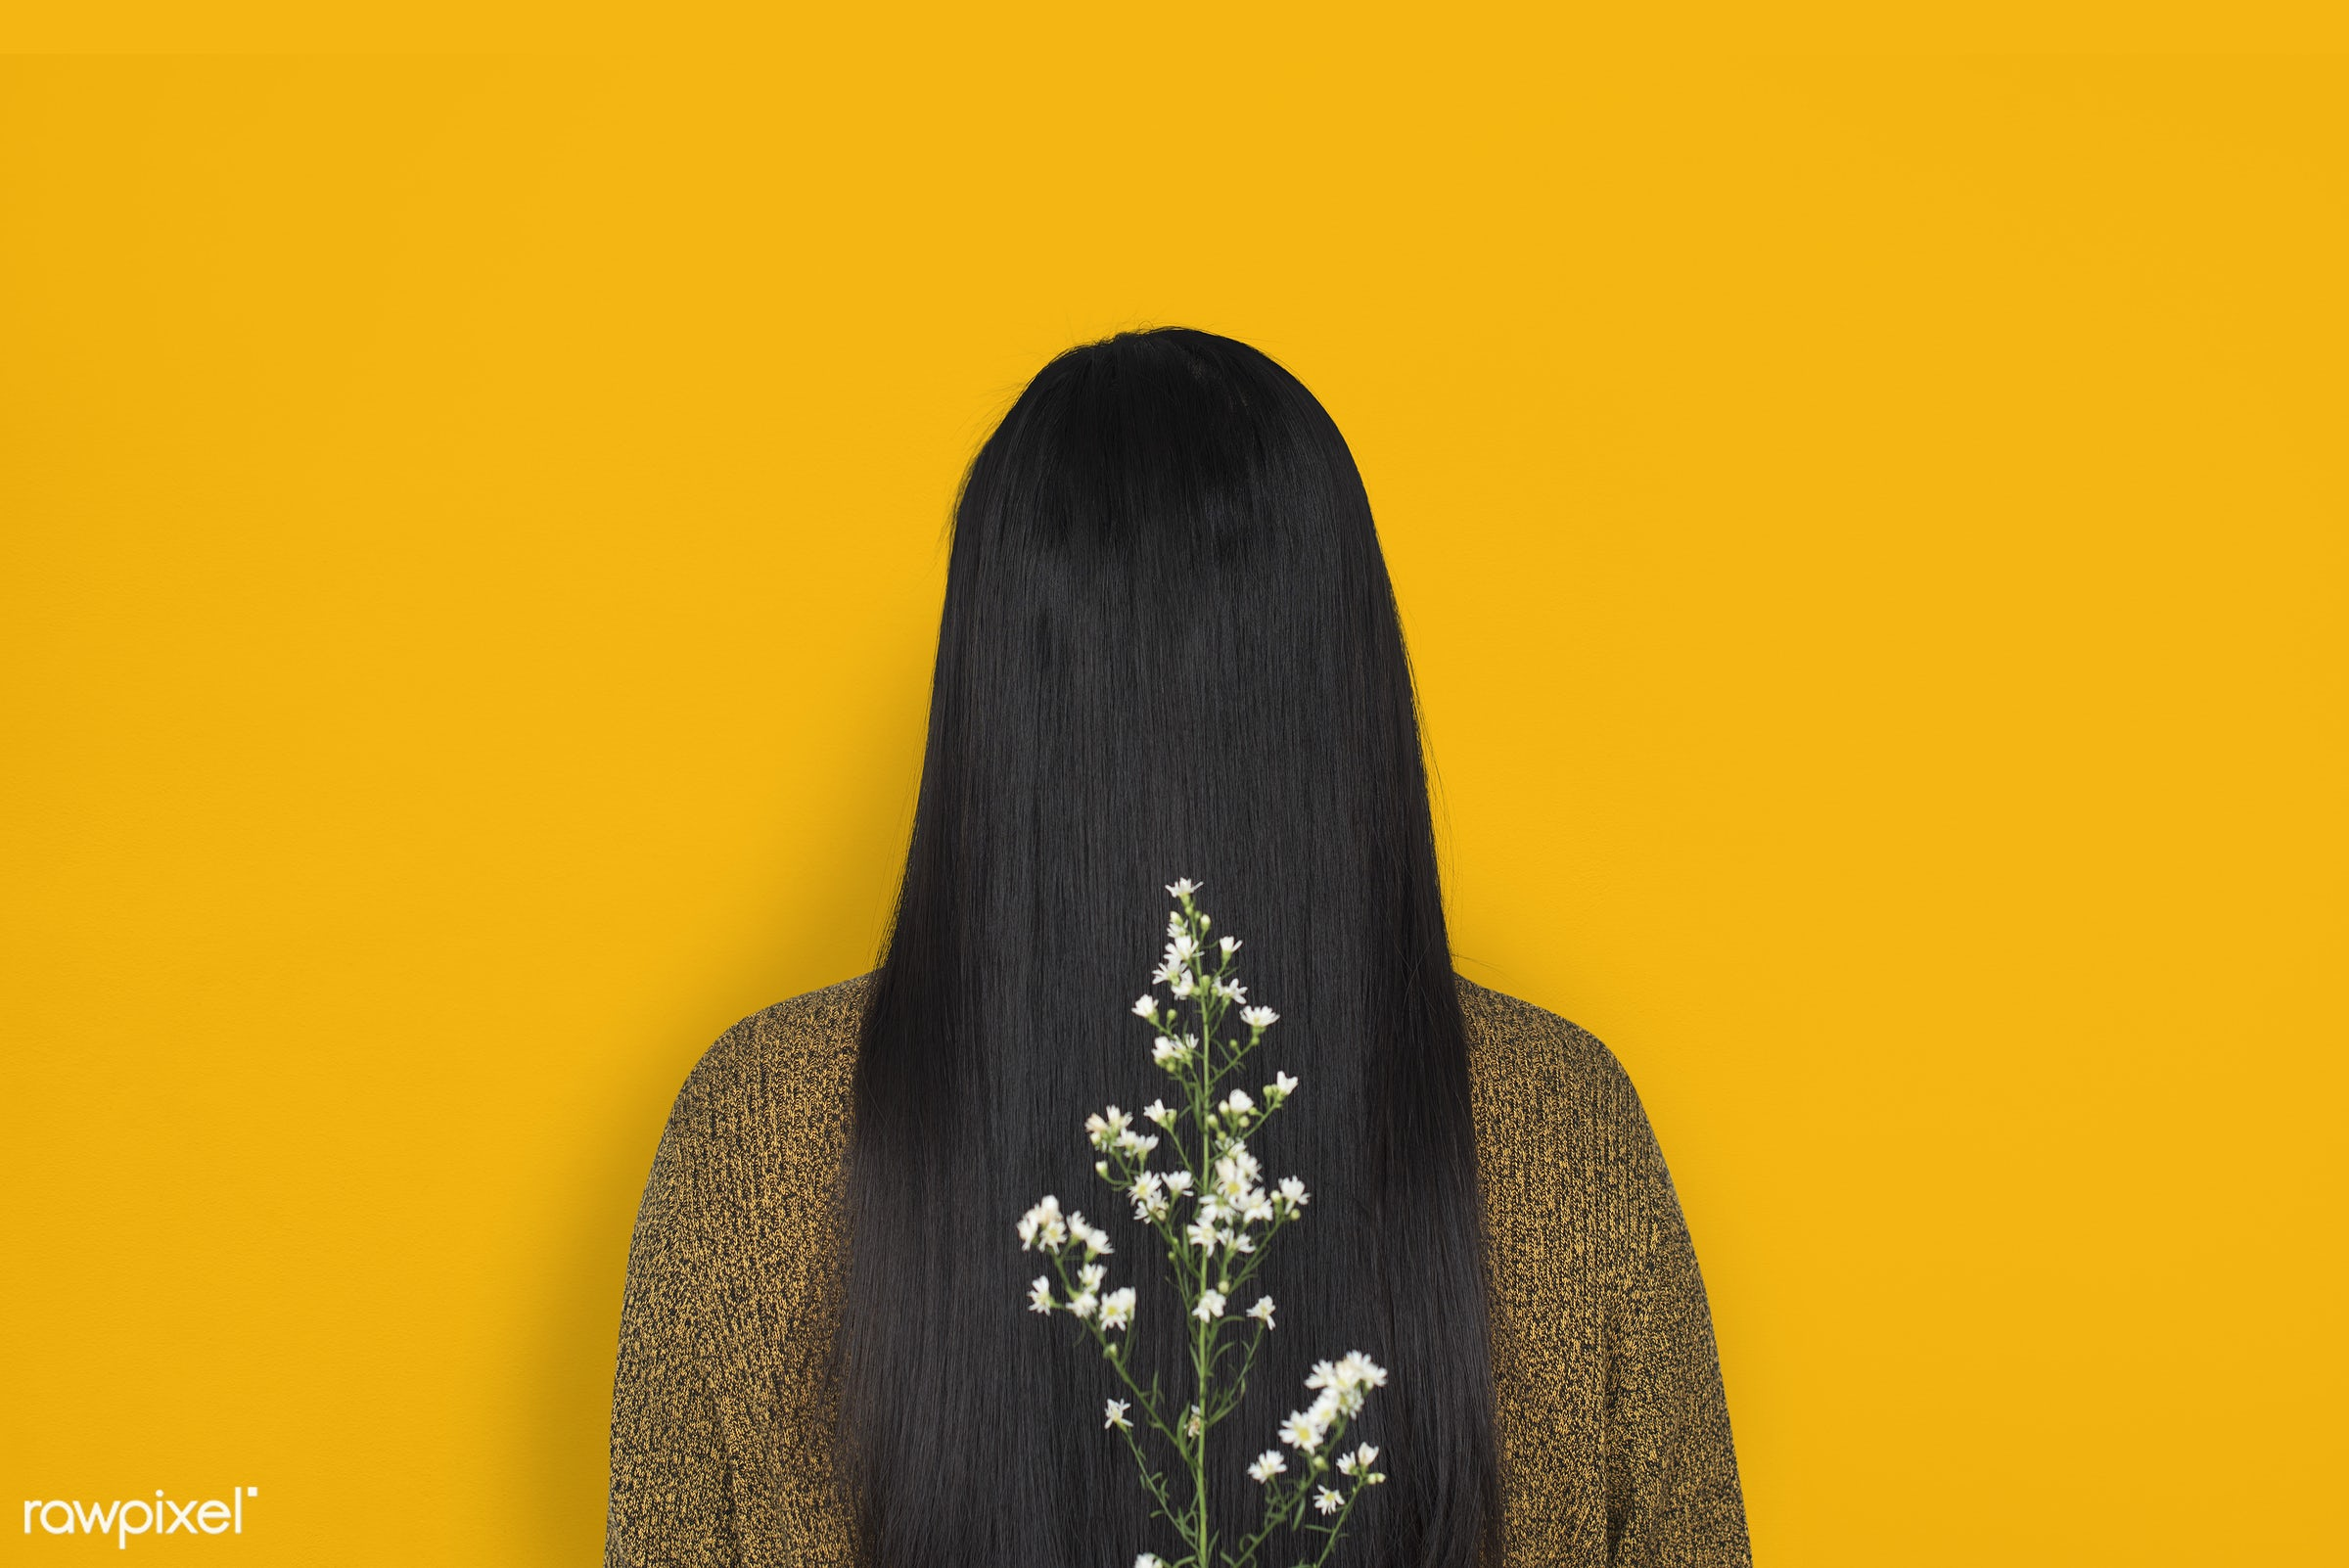 studio, person, yellow, people, girl, woman, casual, flower, rear view, orange, isolated, flora, long hair, adult, portrait...